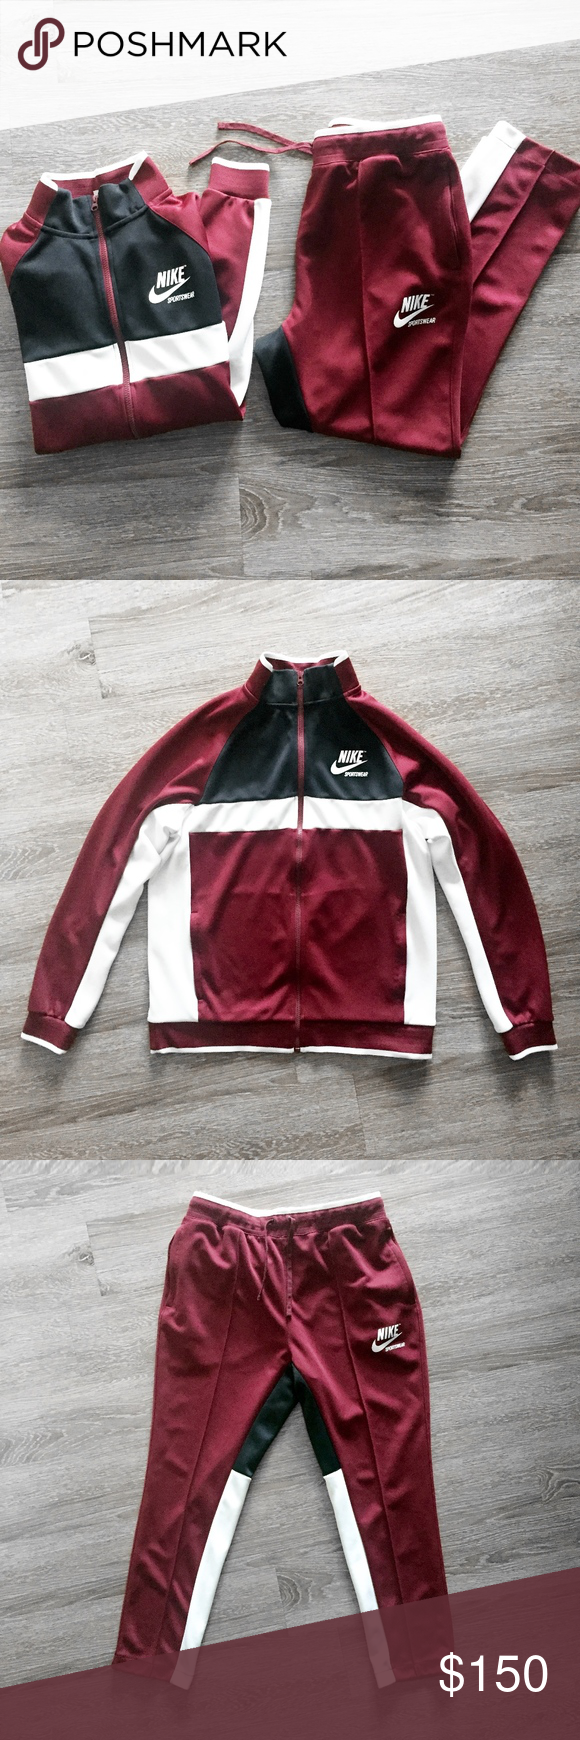 NIKE SPORTSWEAR dark red 2 piece track suit set L Nike